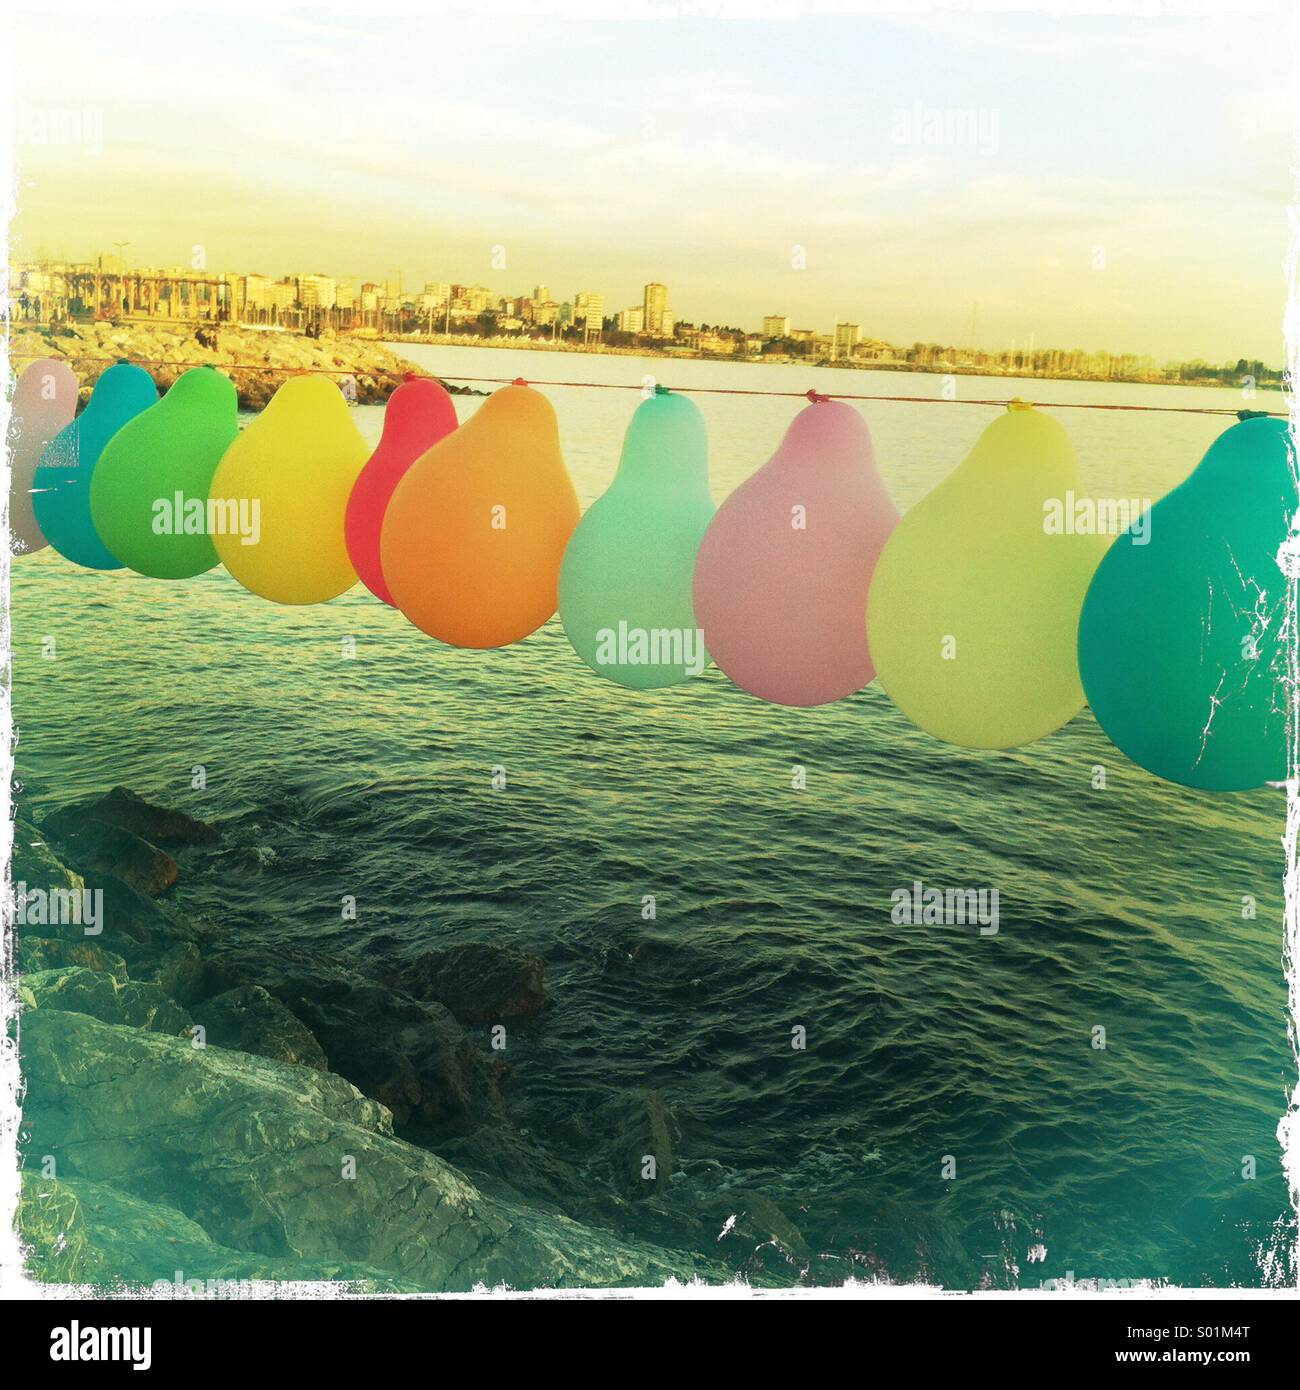 Ballons colorés Photo Stock